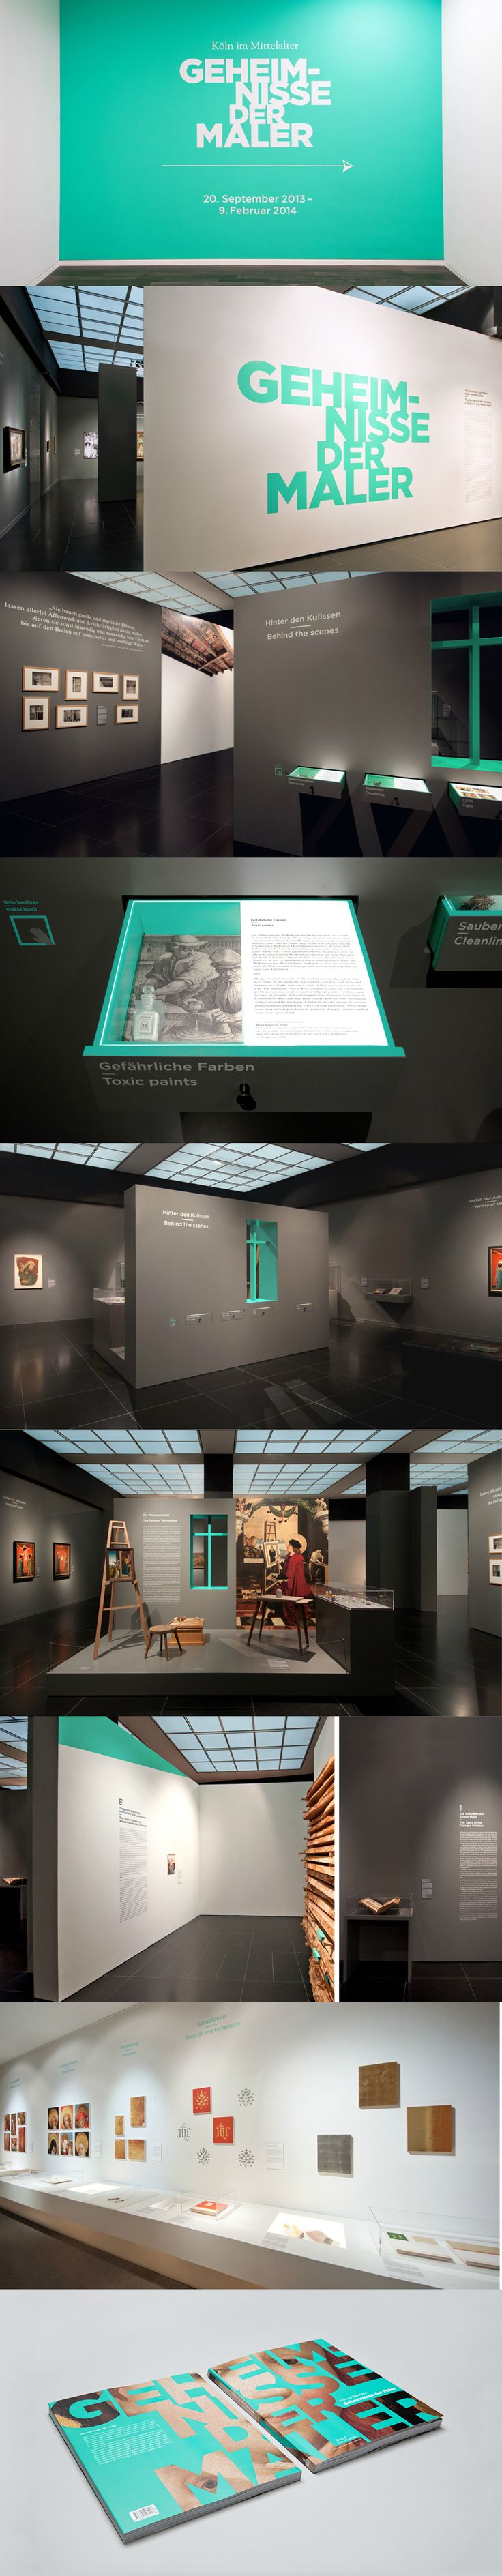 396 best Exhibitions images on Pinterest | Exhibition display ...